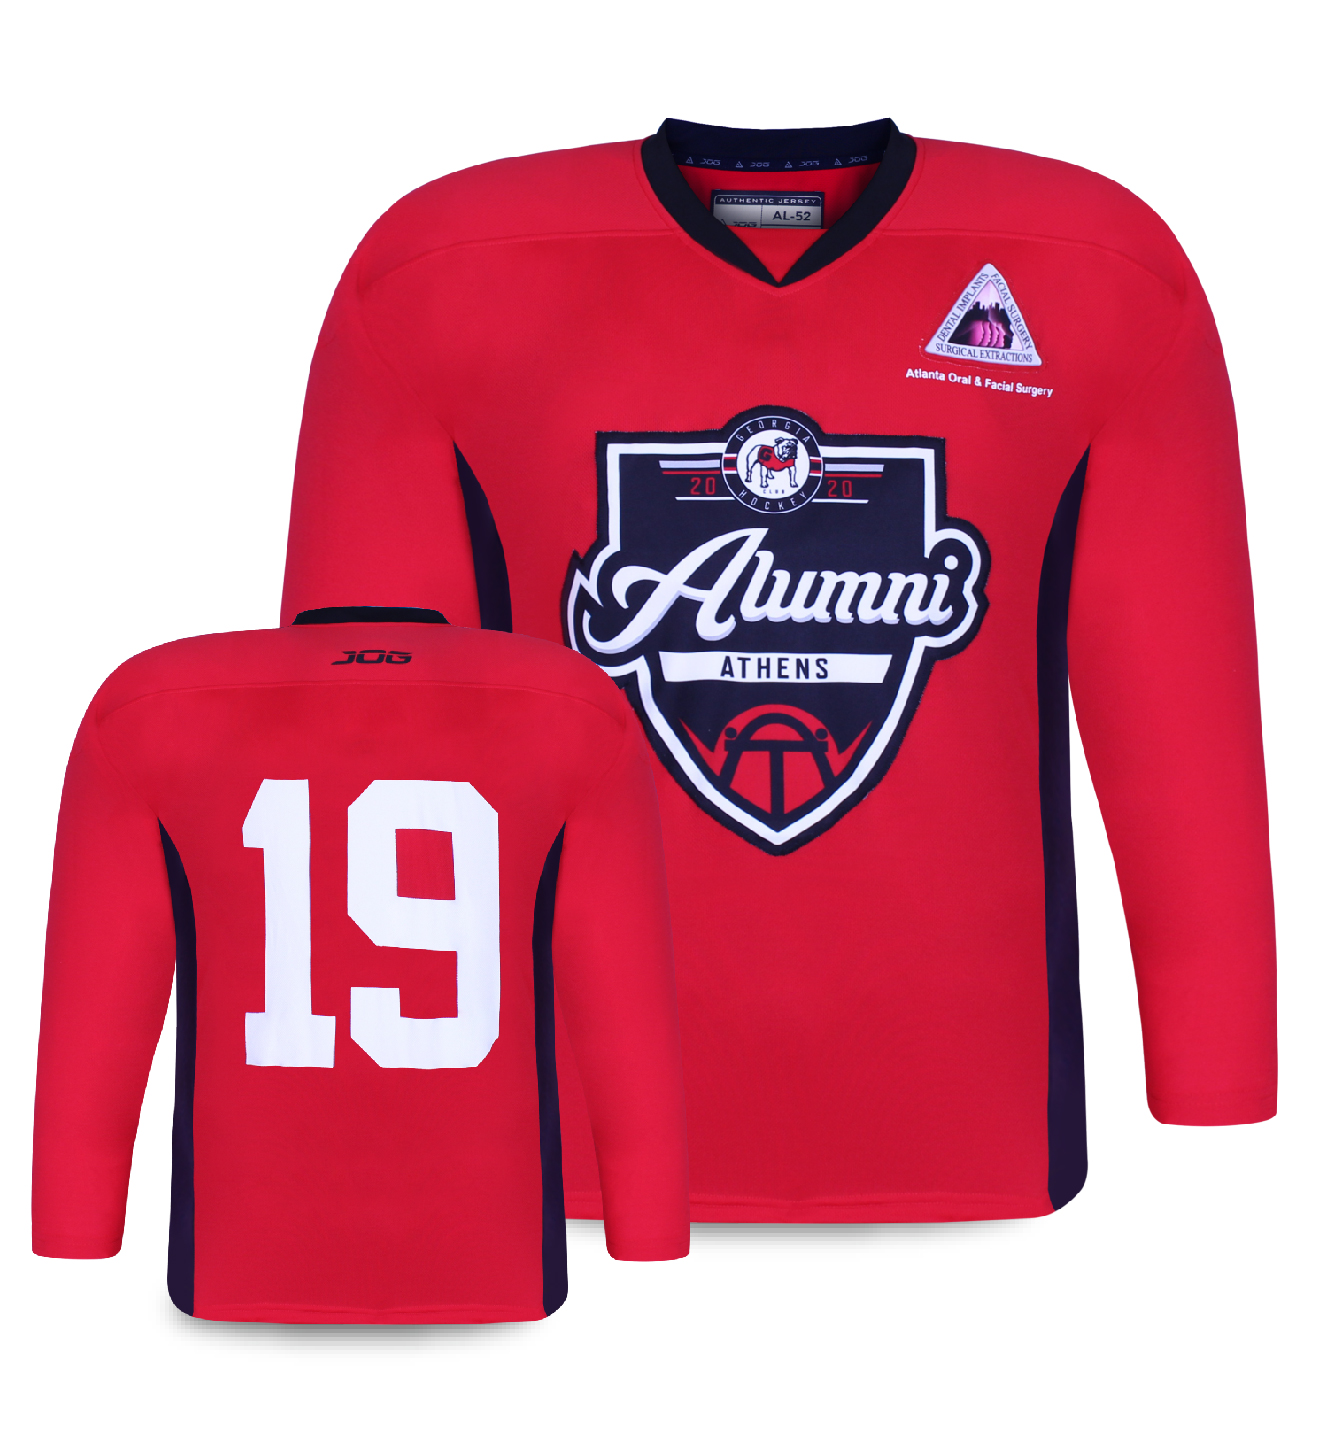 Custom hockey practice jersey.